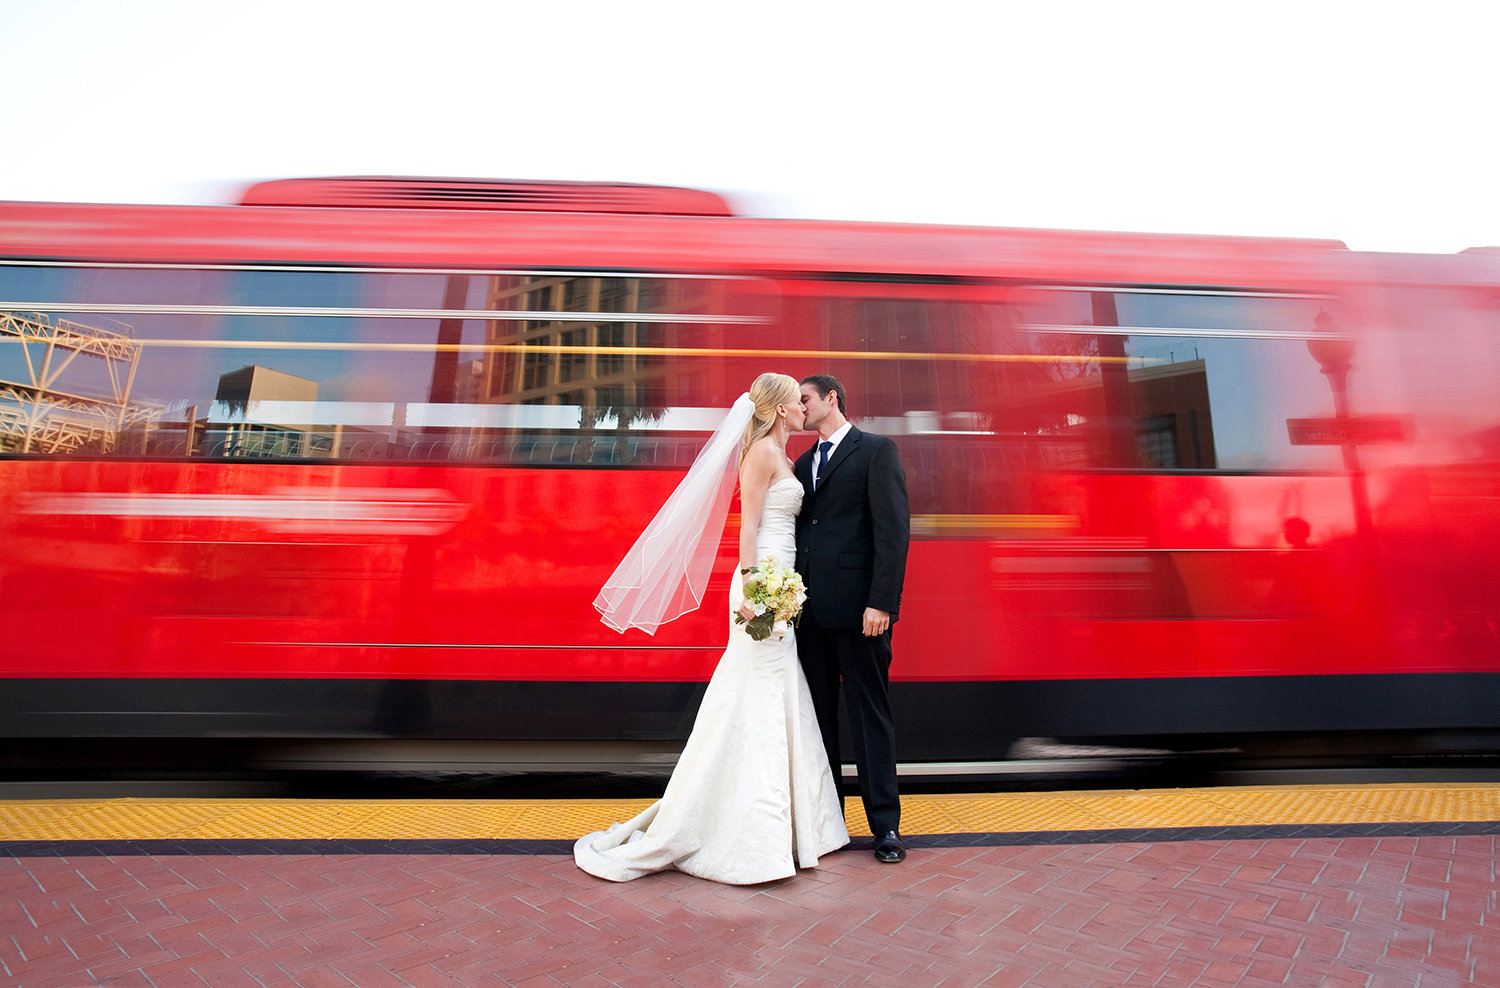 Downtown San Diego wedding photos urban trolley style